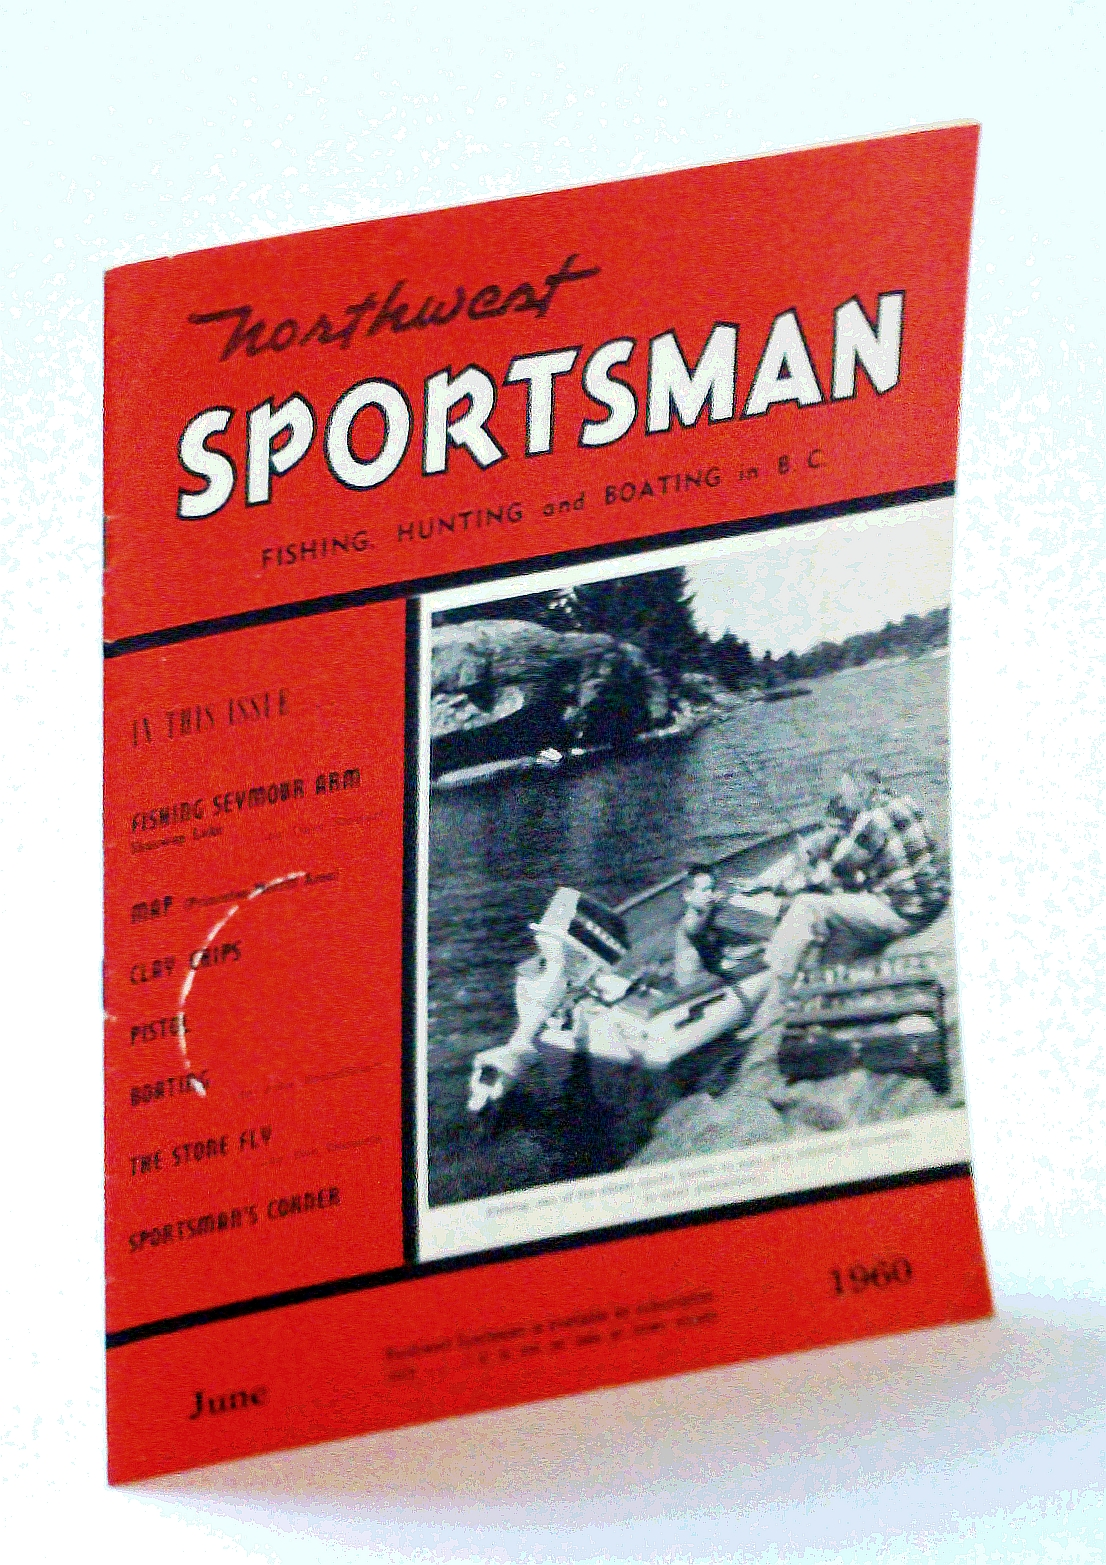 Image for Northwest Sportsman Magazine - Fishing, Hunting and Boating in B.C., June 1960 - Fishing Seymour Arm, Shuswap Lake